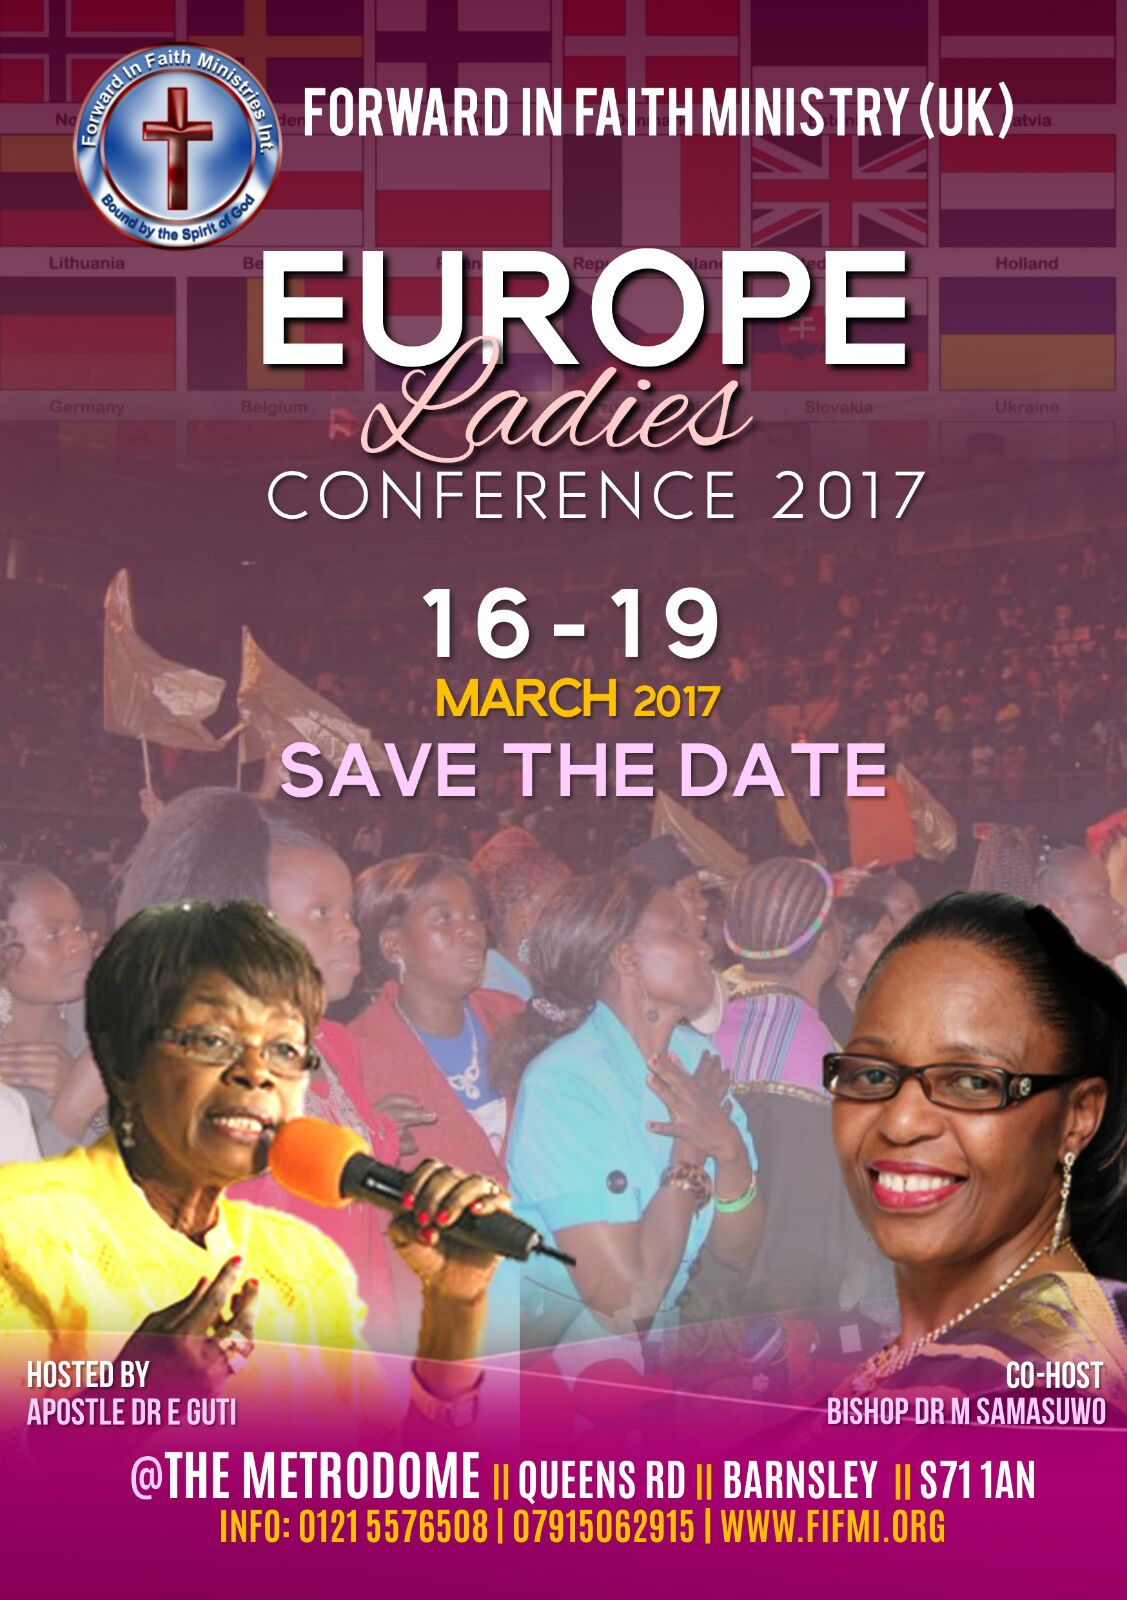 2017 Europe Women S Coference Forward In Faith